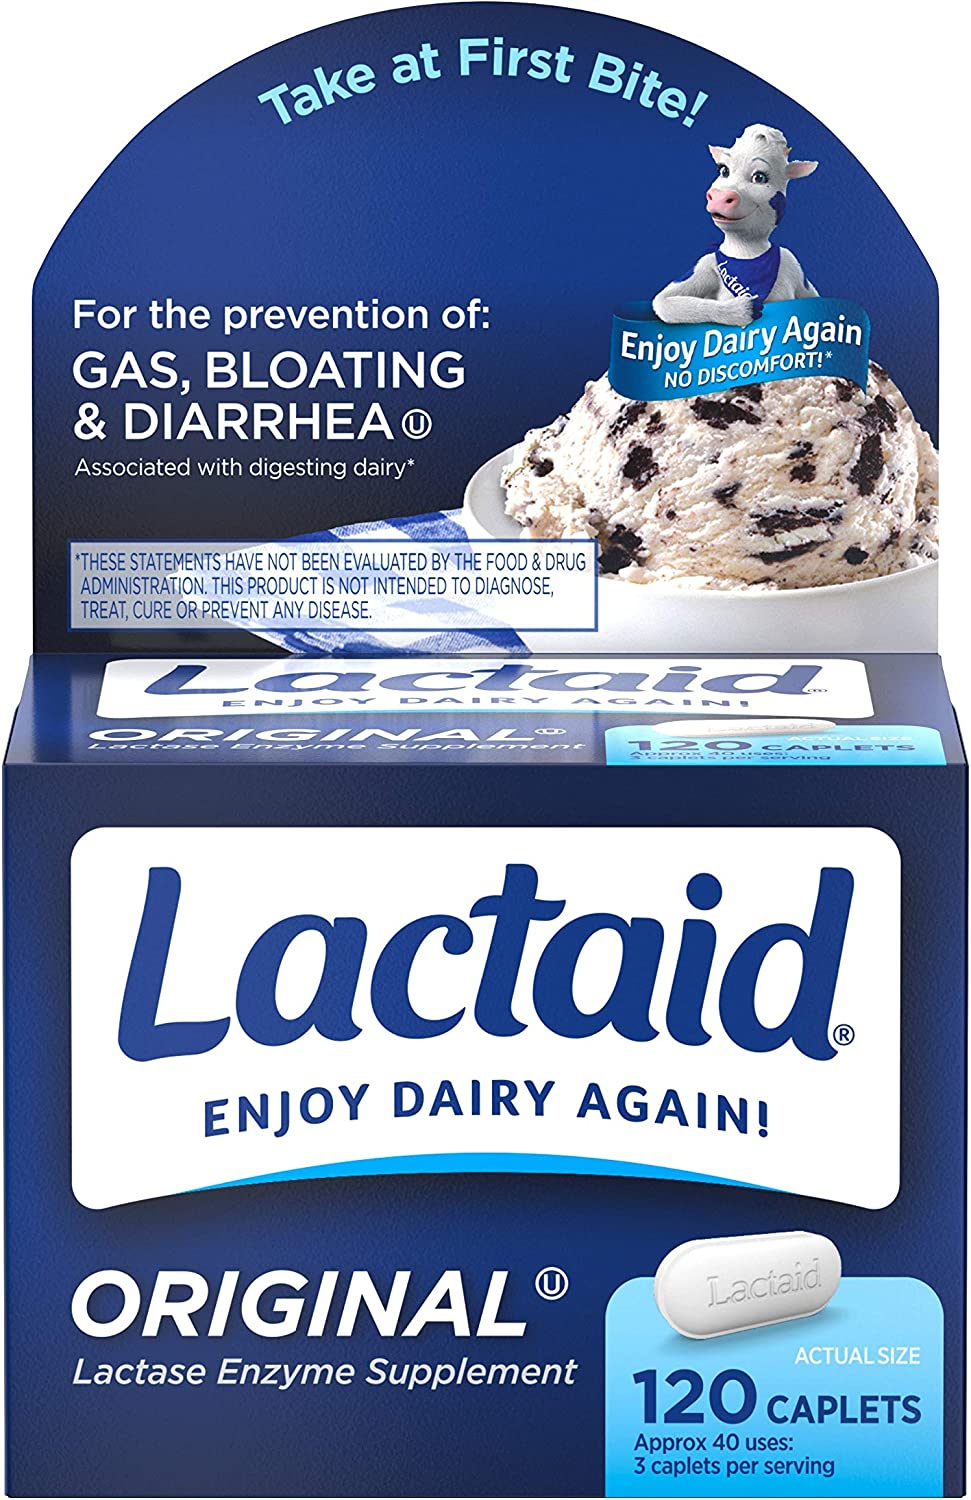 Lactaid Original Strength Lactose Intolerance Relief Caplets with Natural Lactase Enzyme, Dietary Supplement to Help Prevent Gas, Bloating & Diarrhea Due to Lactose Sensitivity, 120 ct.